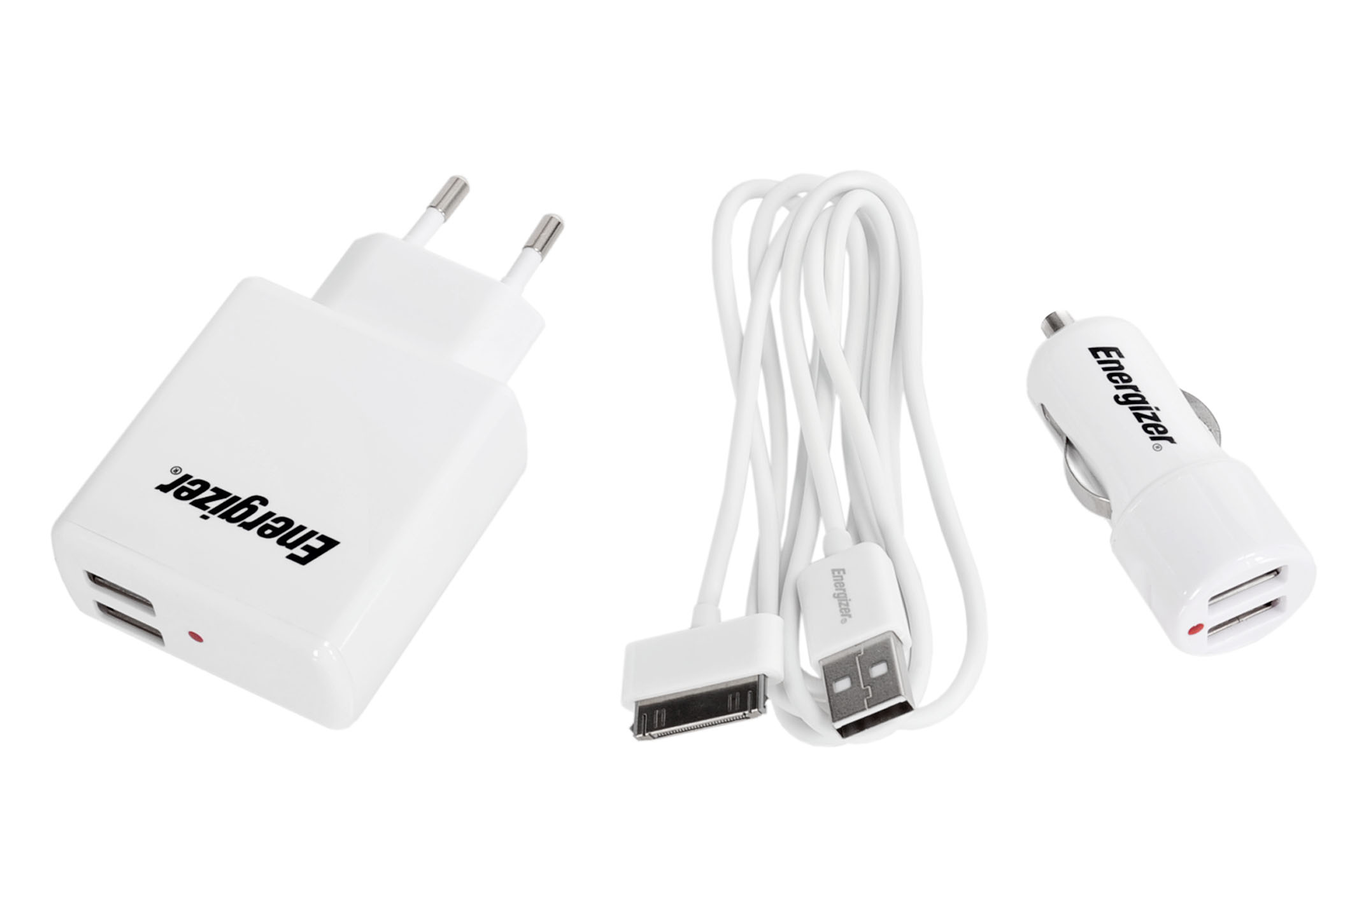 Chargeur pour iphone energizer pack allume cigare for Double allume cigare darty